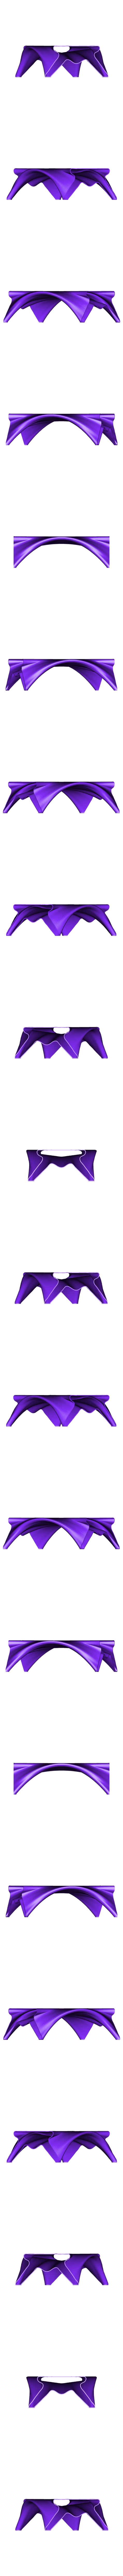 arch-coffee-table-1.stl Download free STL file Arch coffee table • 3D printing model, IonutPatrascu